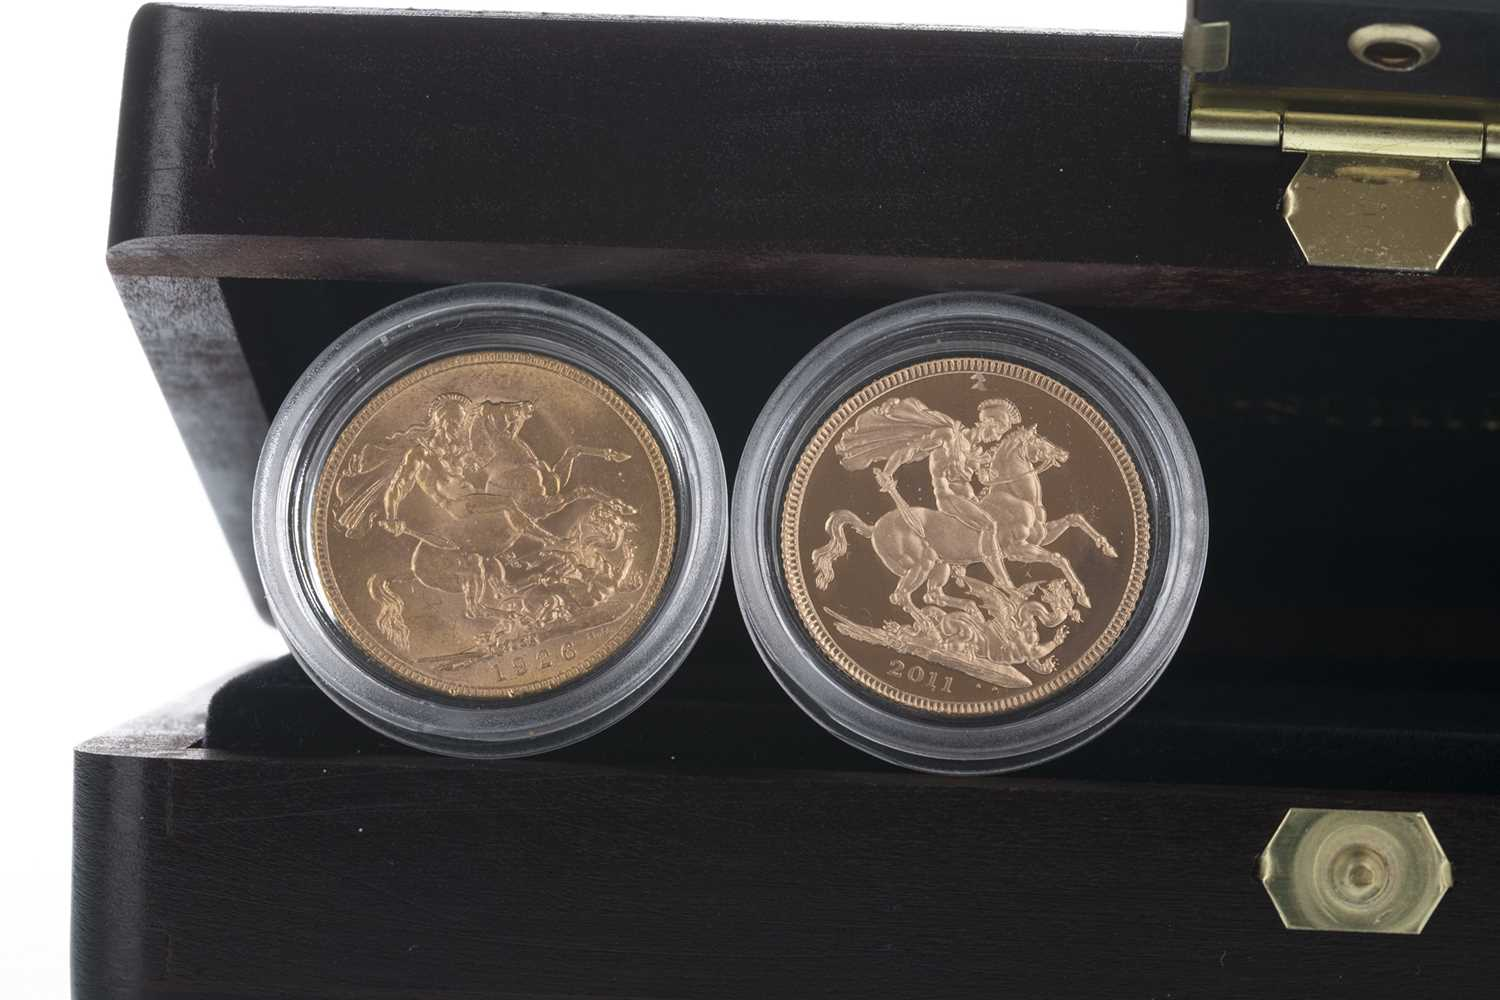 Lot 14-THE QUEEN ELIZABETH II (1952 - PRESENT) 85TH BIRTHDAY SOVEREIGN TWO COIN SET